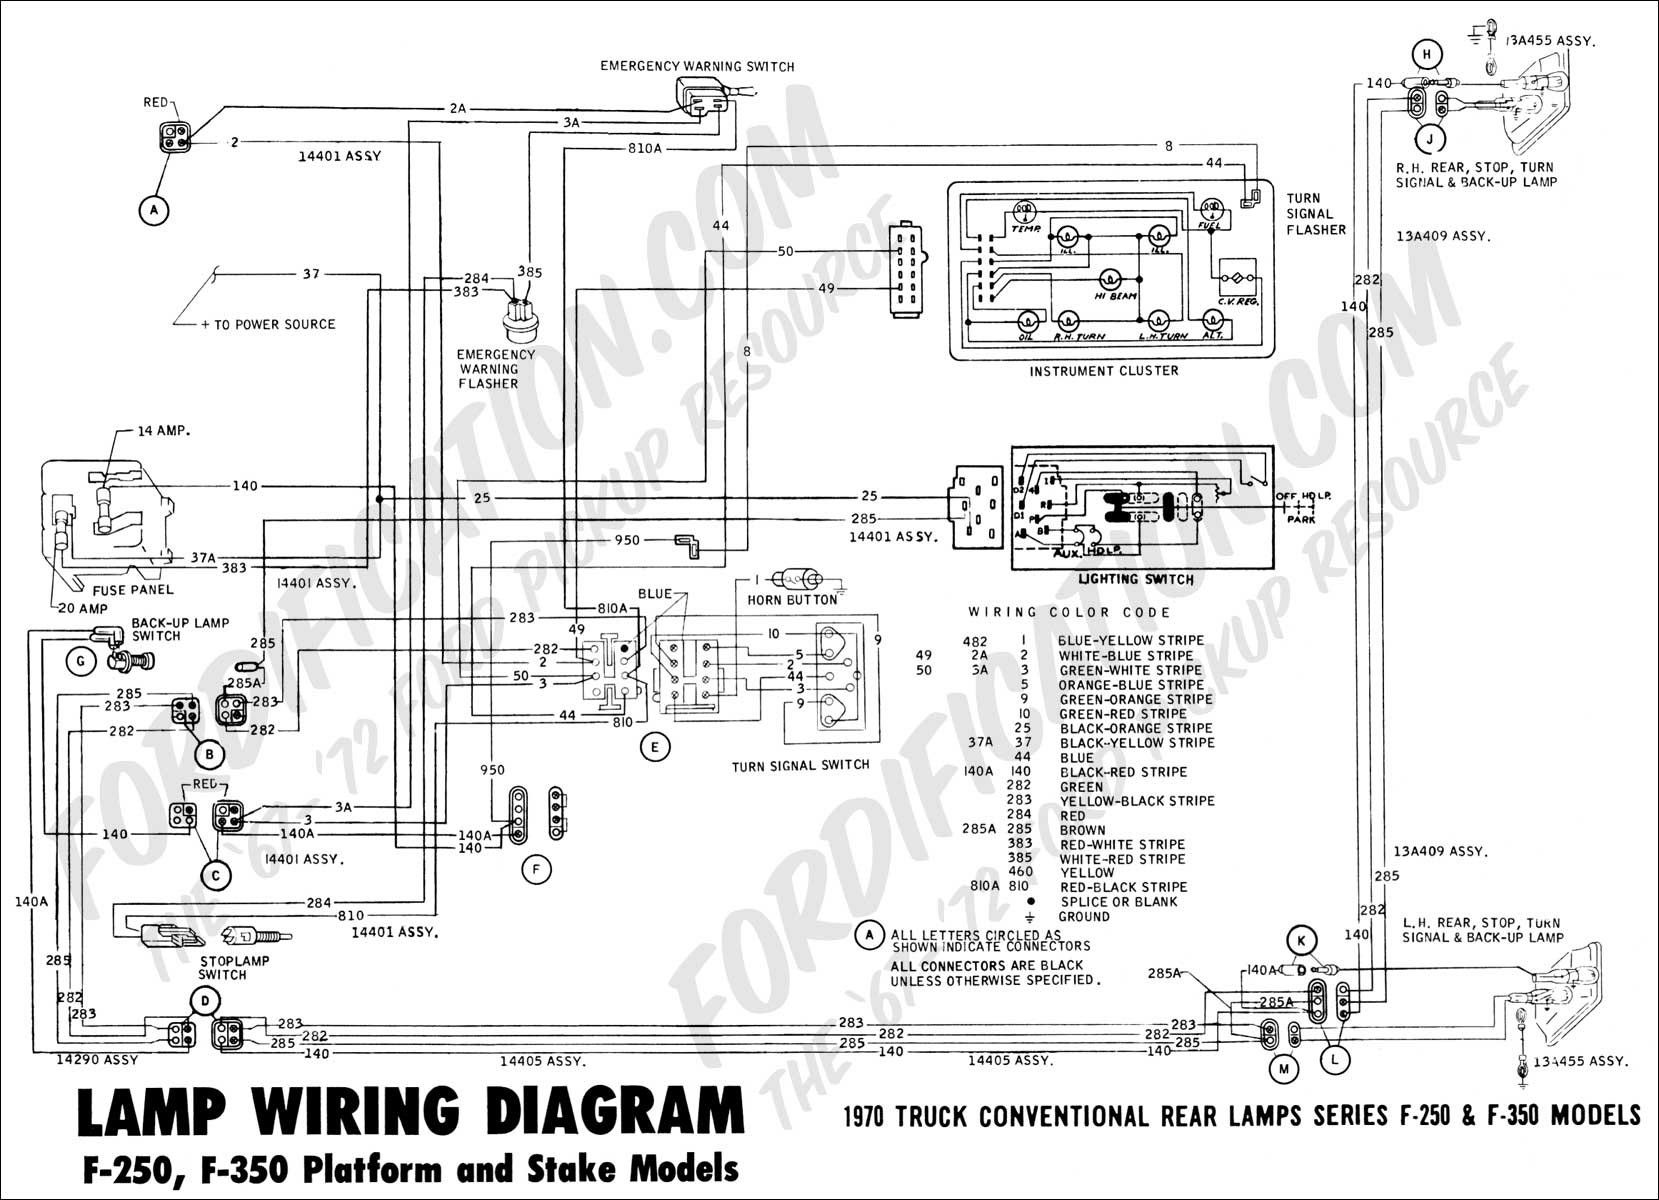 Ford Truck Technical Drawings And Schematics Section H Wiring Inside Ford F250 Wiring Diagram Ford F250 Diagram Ford Lightning